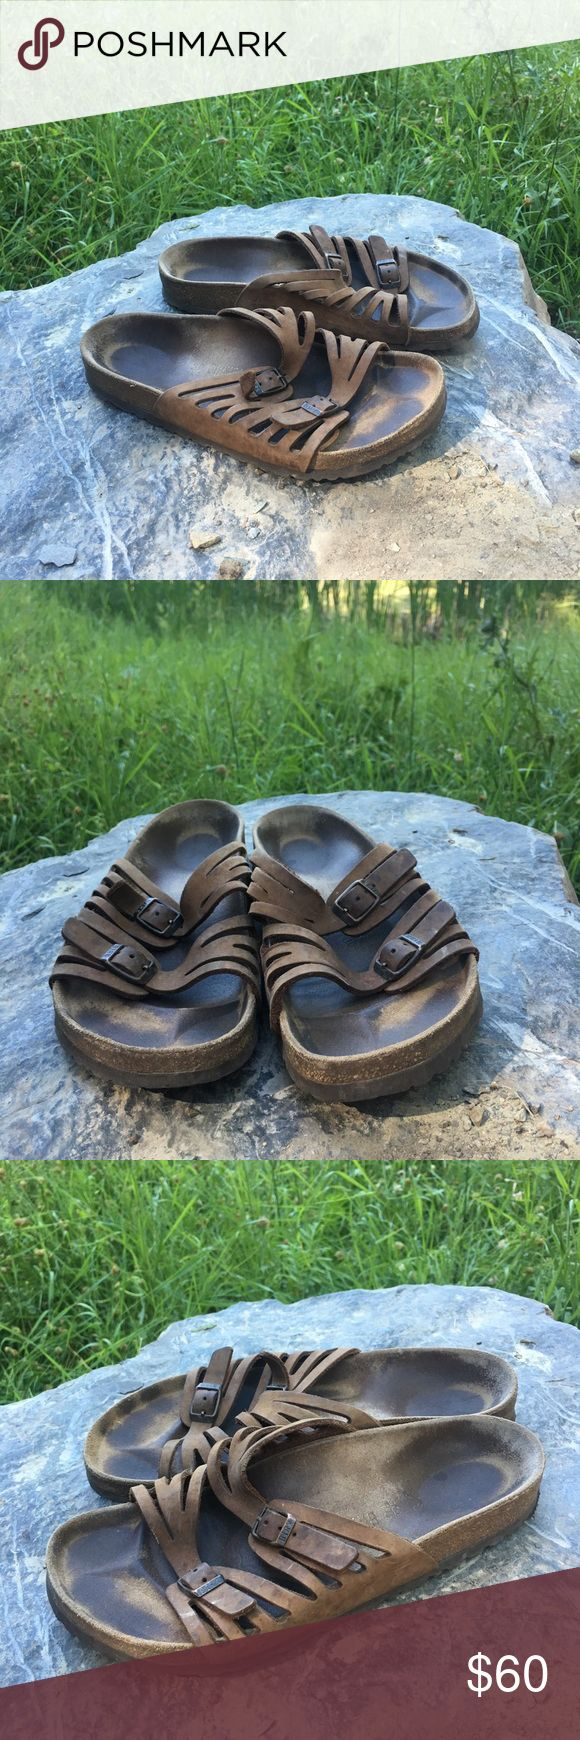 Birkenstock Granada Size 39 Good condition! One of the strap holes is a bit stretched out, hardly noticeable and can be fixed by punching a new hole in the strap - super comfy and great for summer or with socks in the fall 🤗 Birkenstock Shoes Sandals